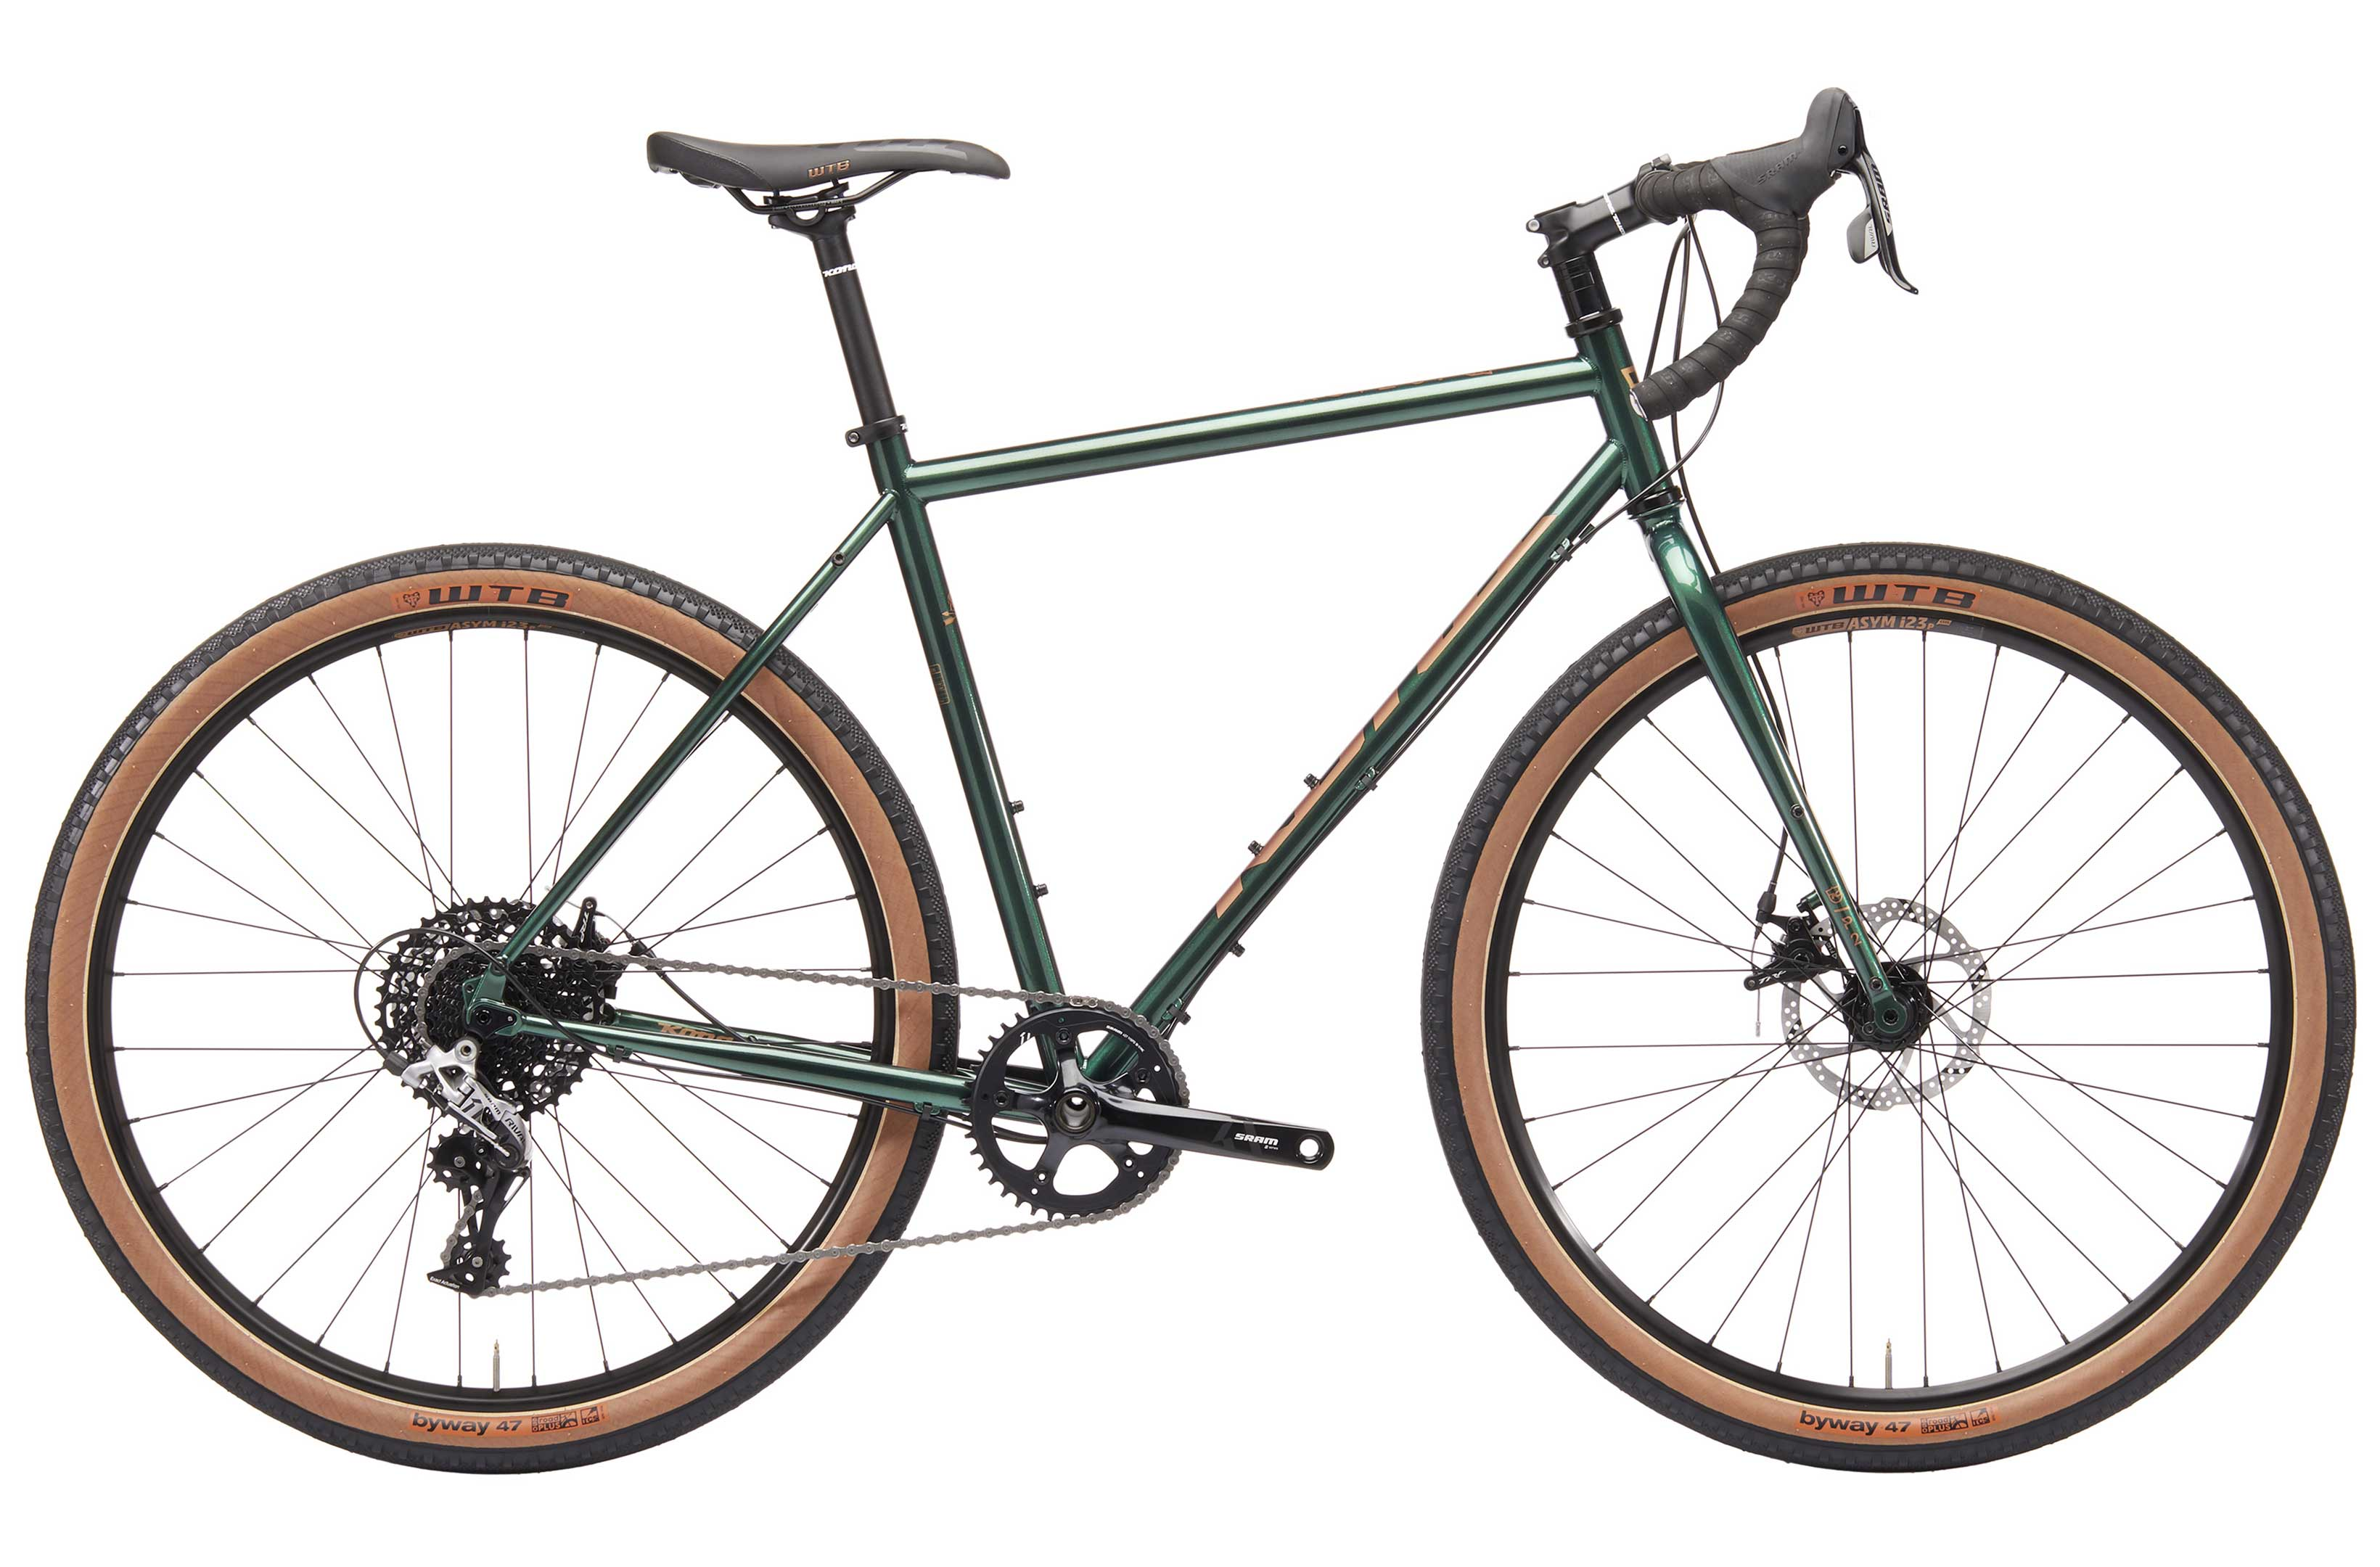 kona-rove-st-2019-gravel-bike-green-ev354050-6000-1